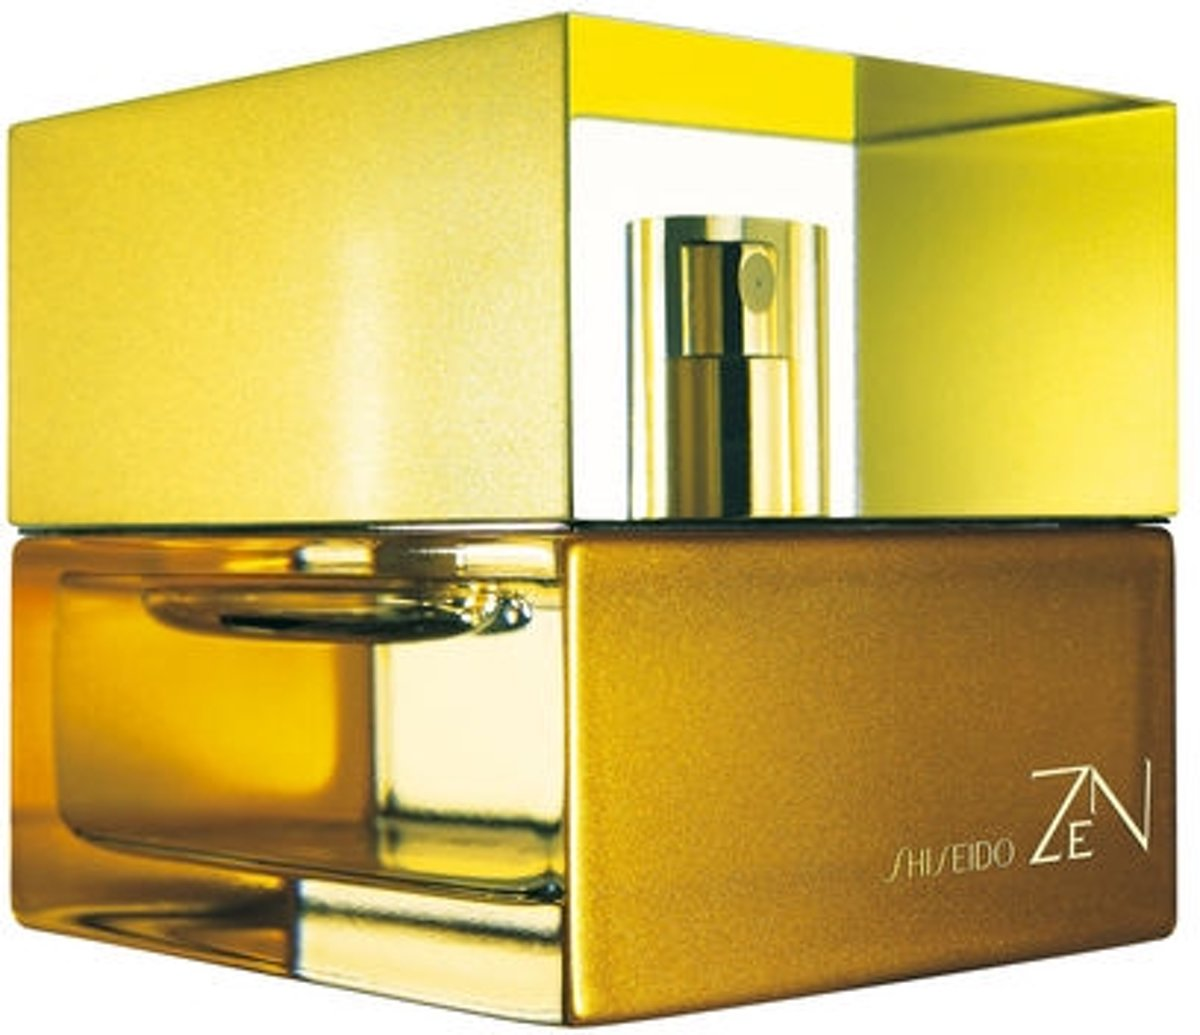 MULTI BUNDEL 2 stuks Shiseido Zen Eau De Perfume Spray 100ml